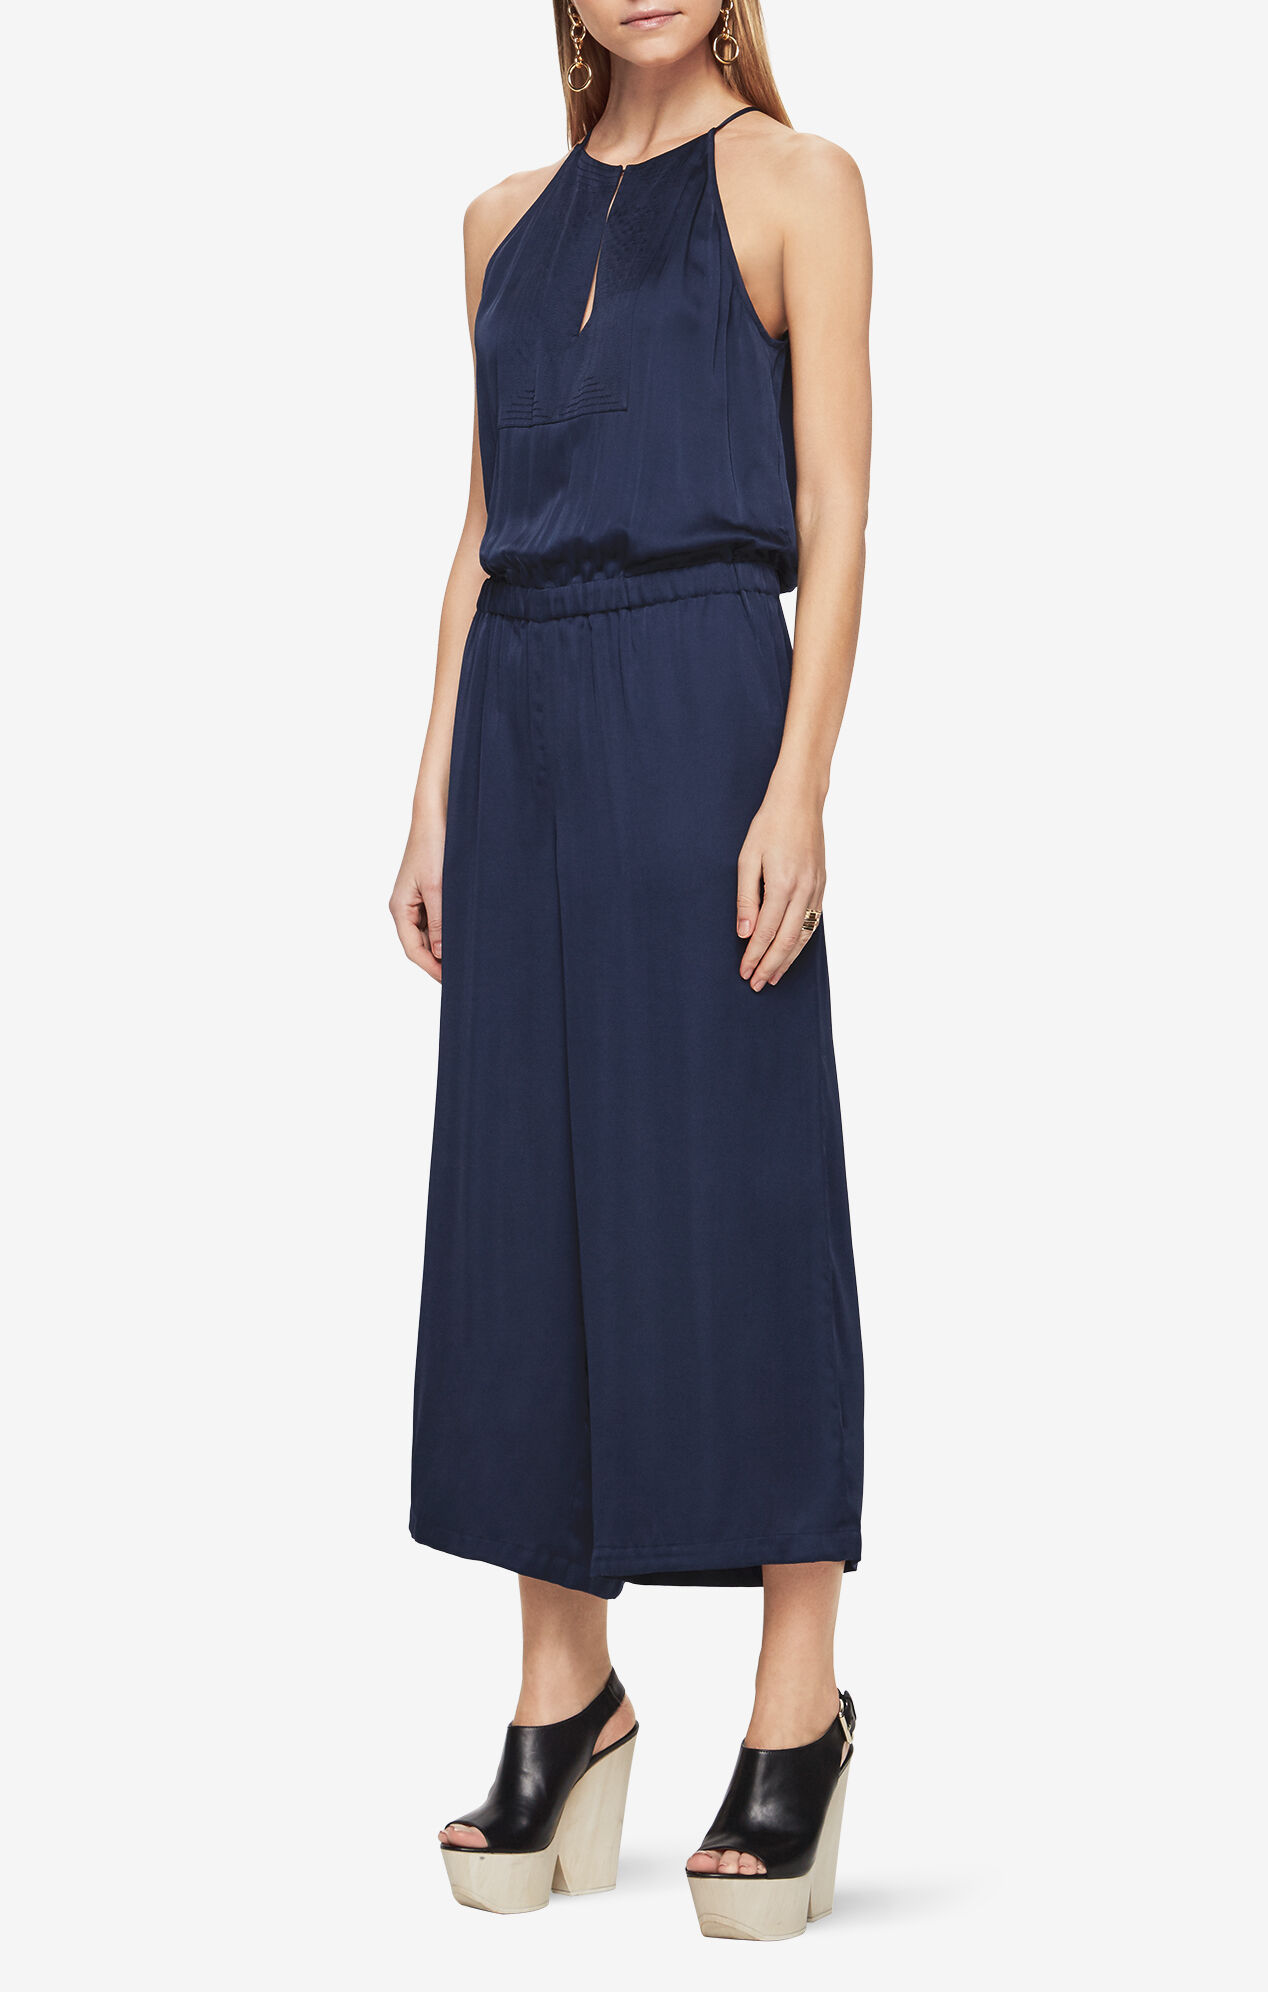 Msm cargo tracking - Maxwell Sateen Jumpsuit